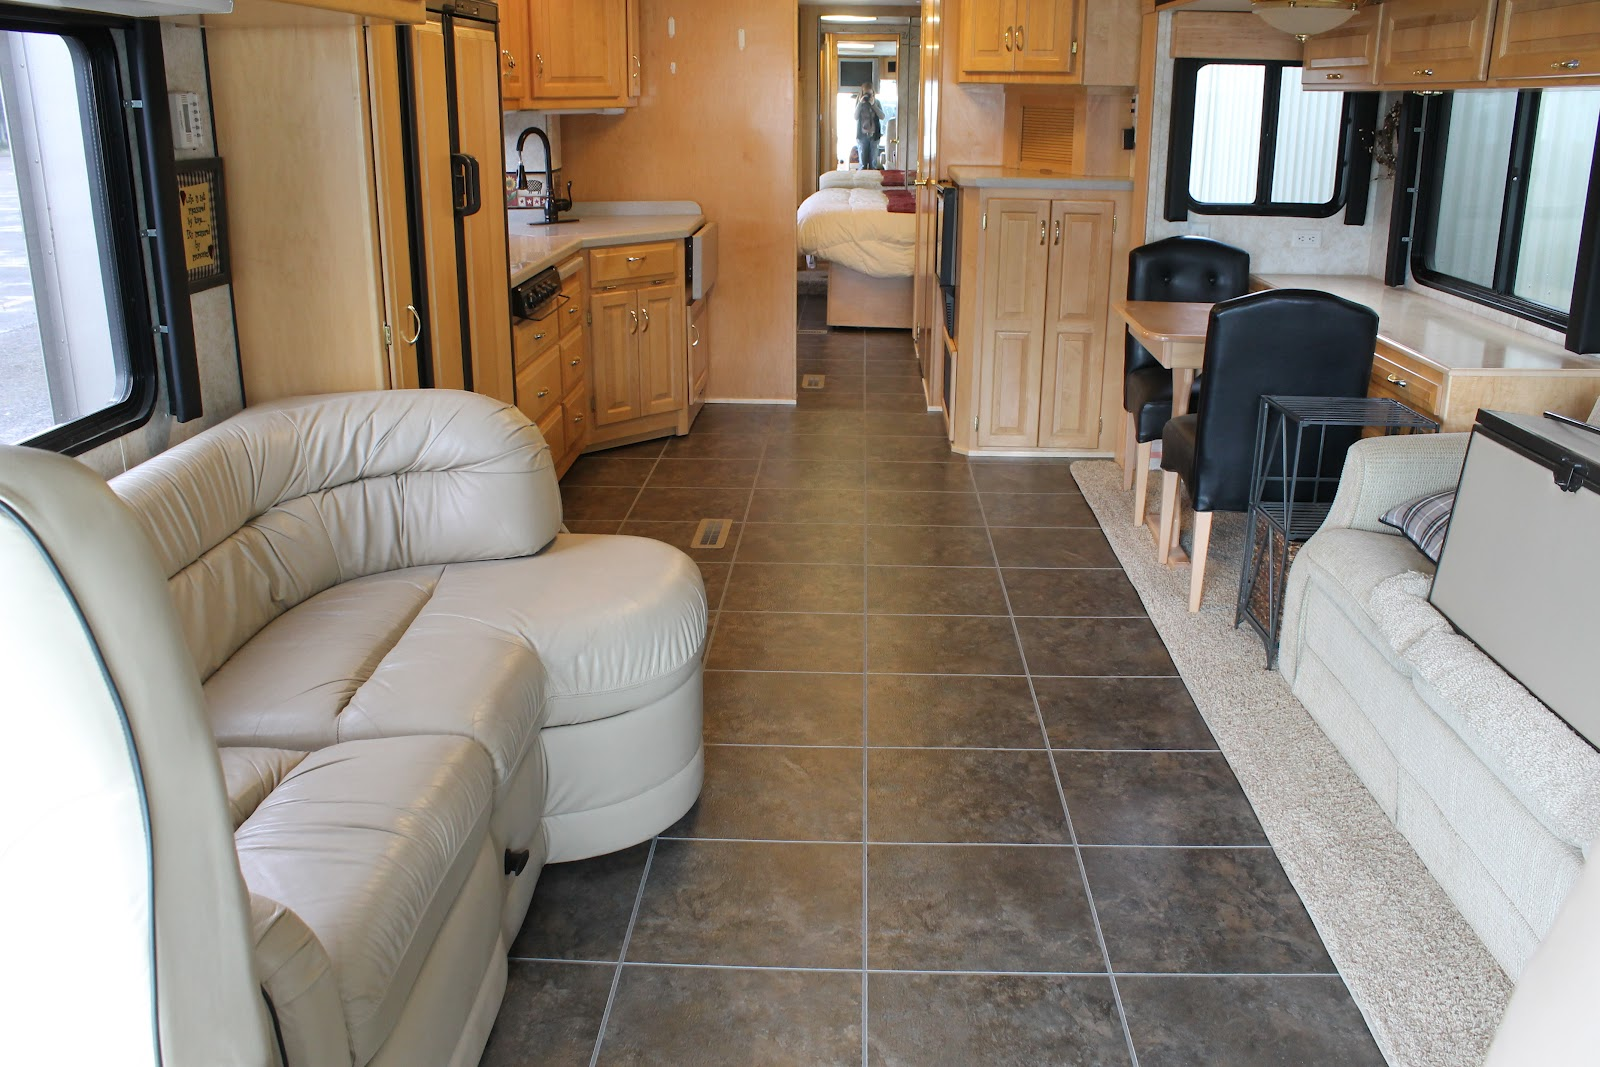 Countryside interiors transforming rvs and trailers since the 80s entryway on 04 dutch star new nafco tile and metal trim dailygadgetfo Choice Image